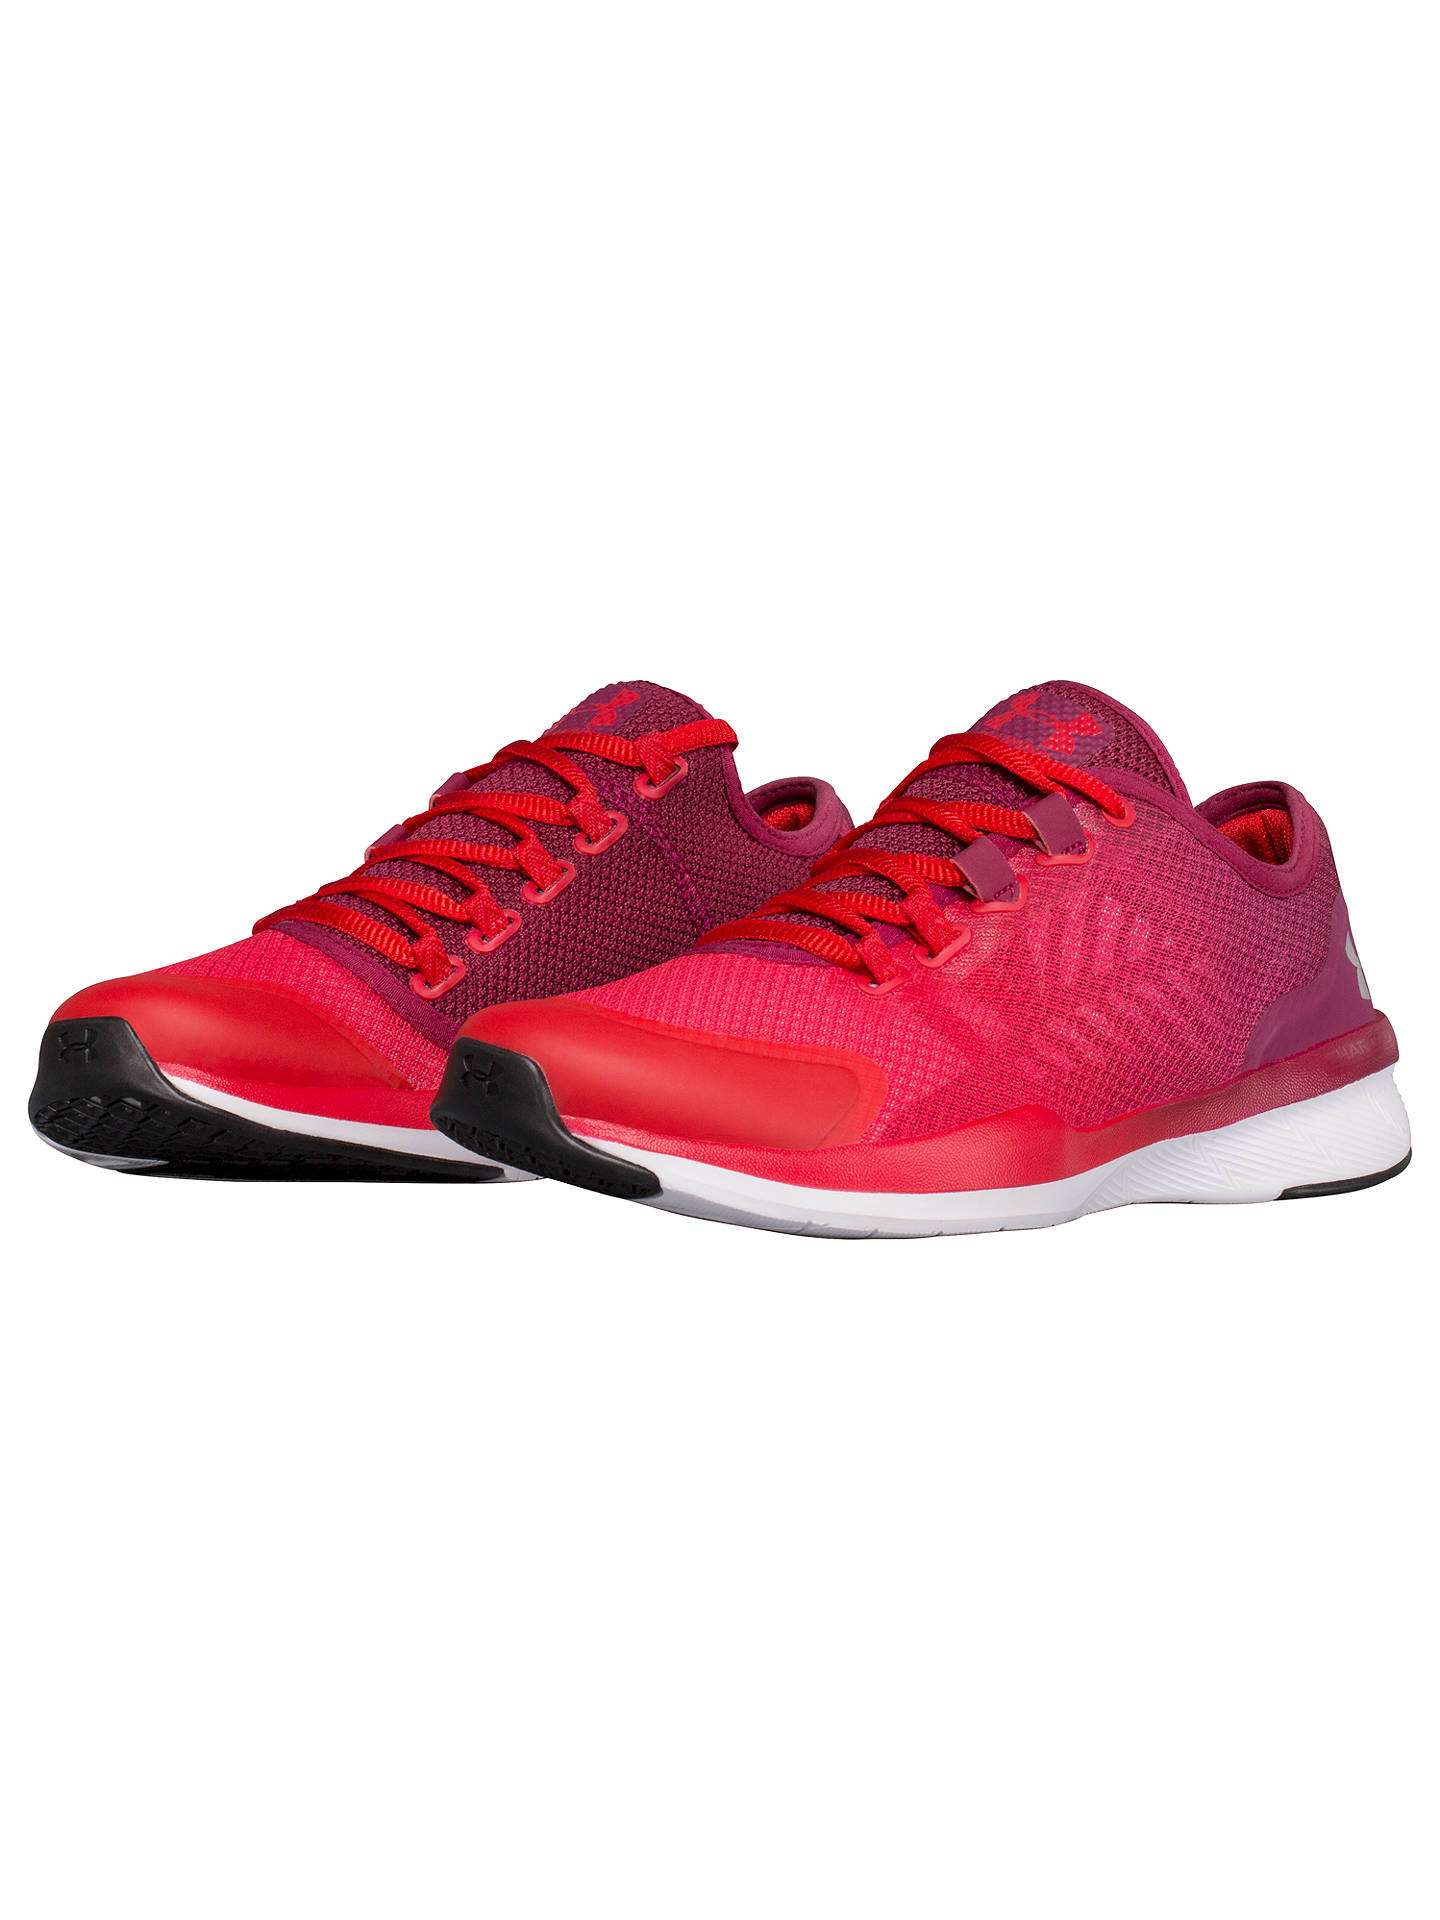 Under Armour Charged Push Women'S Training Shoes Red At Under Armour Charged Push Shoes